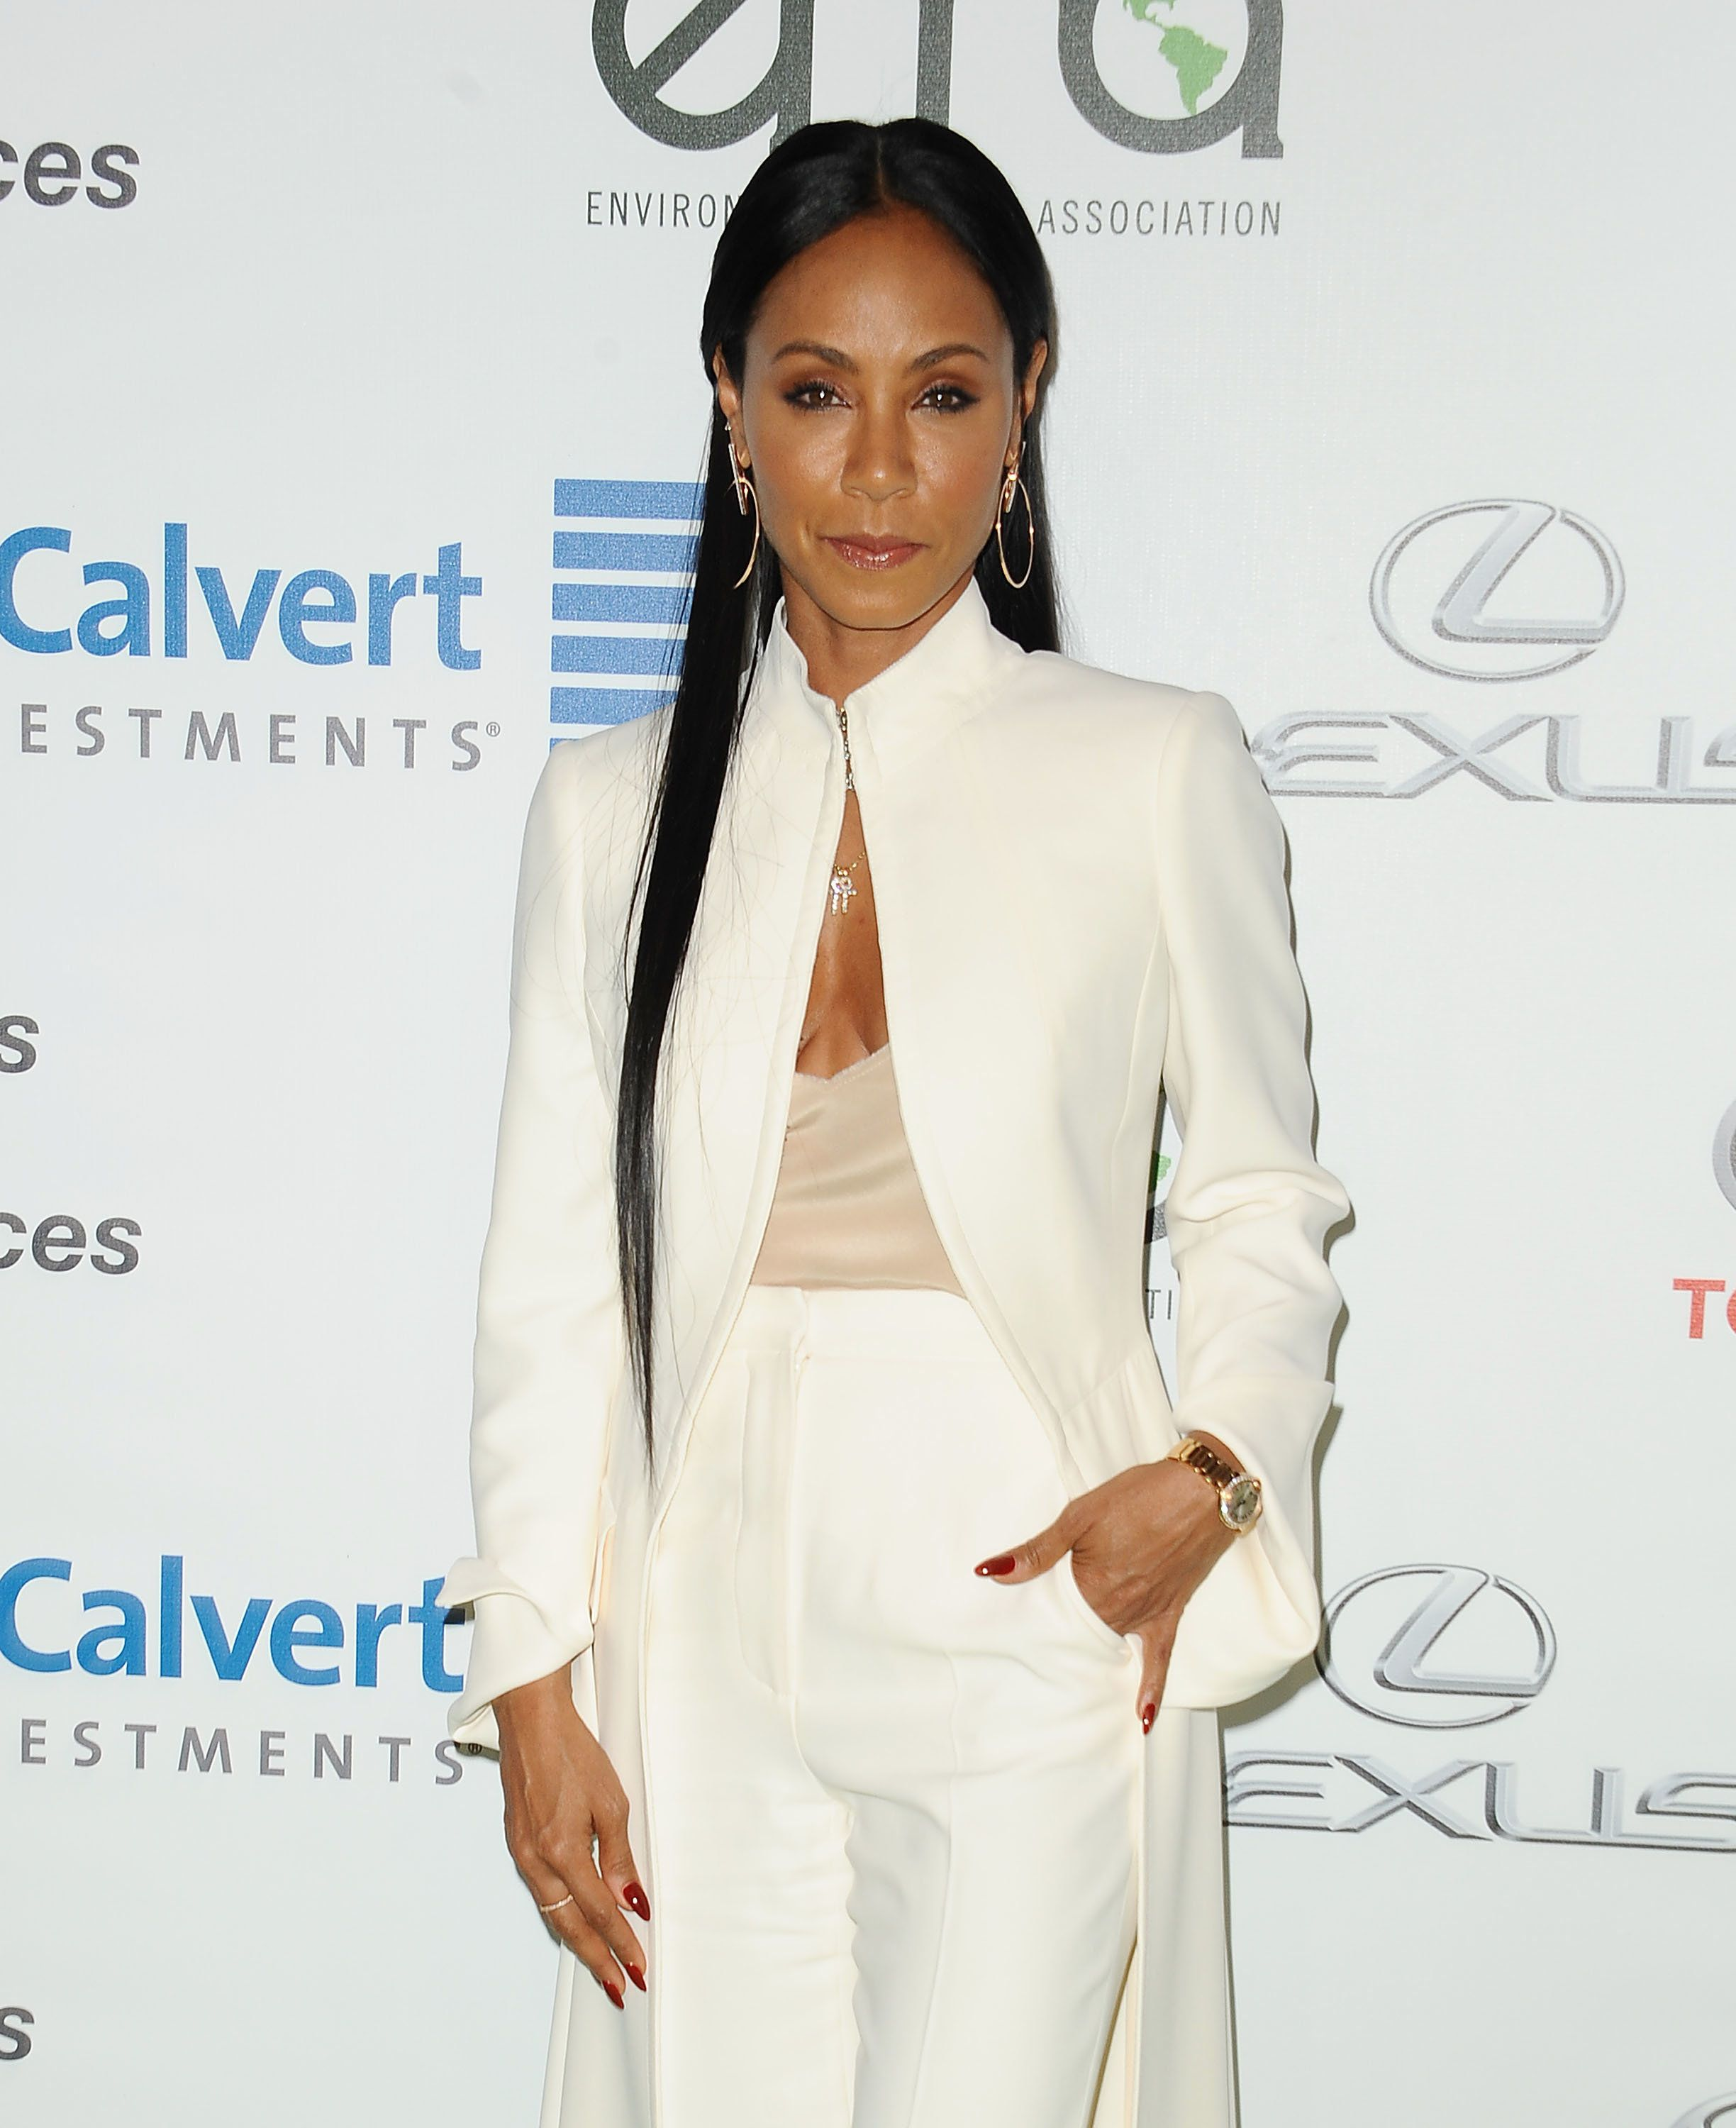 BURBANK, CA - OCTOBER 22:  Actress Jada Pinkett Smith attends the 26th annual EMA Awards at Warner Bros. Studios on October 22, 2016 in Burbank, California.  (Photo by Jason LaVeris/FilmMagic)